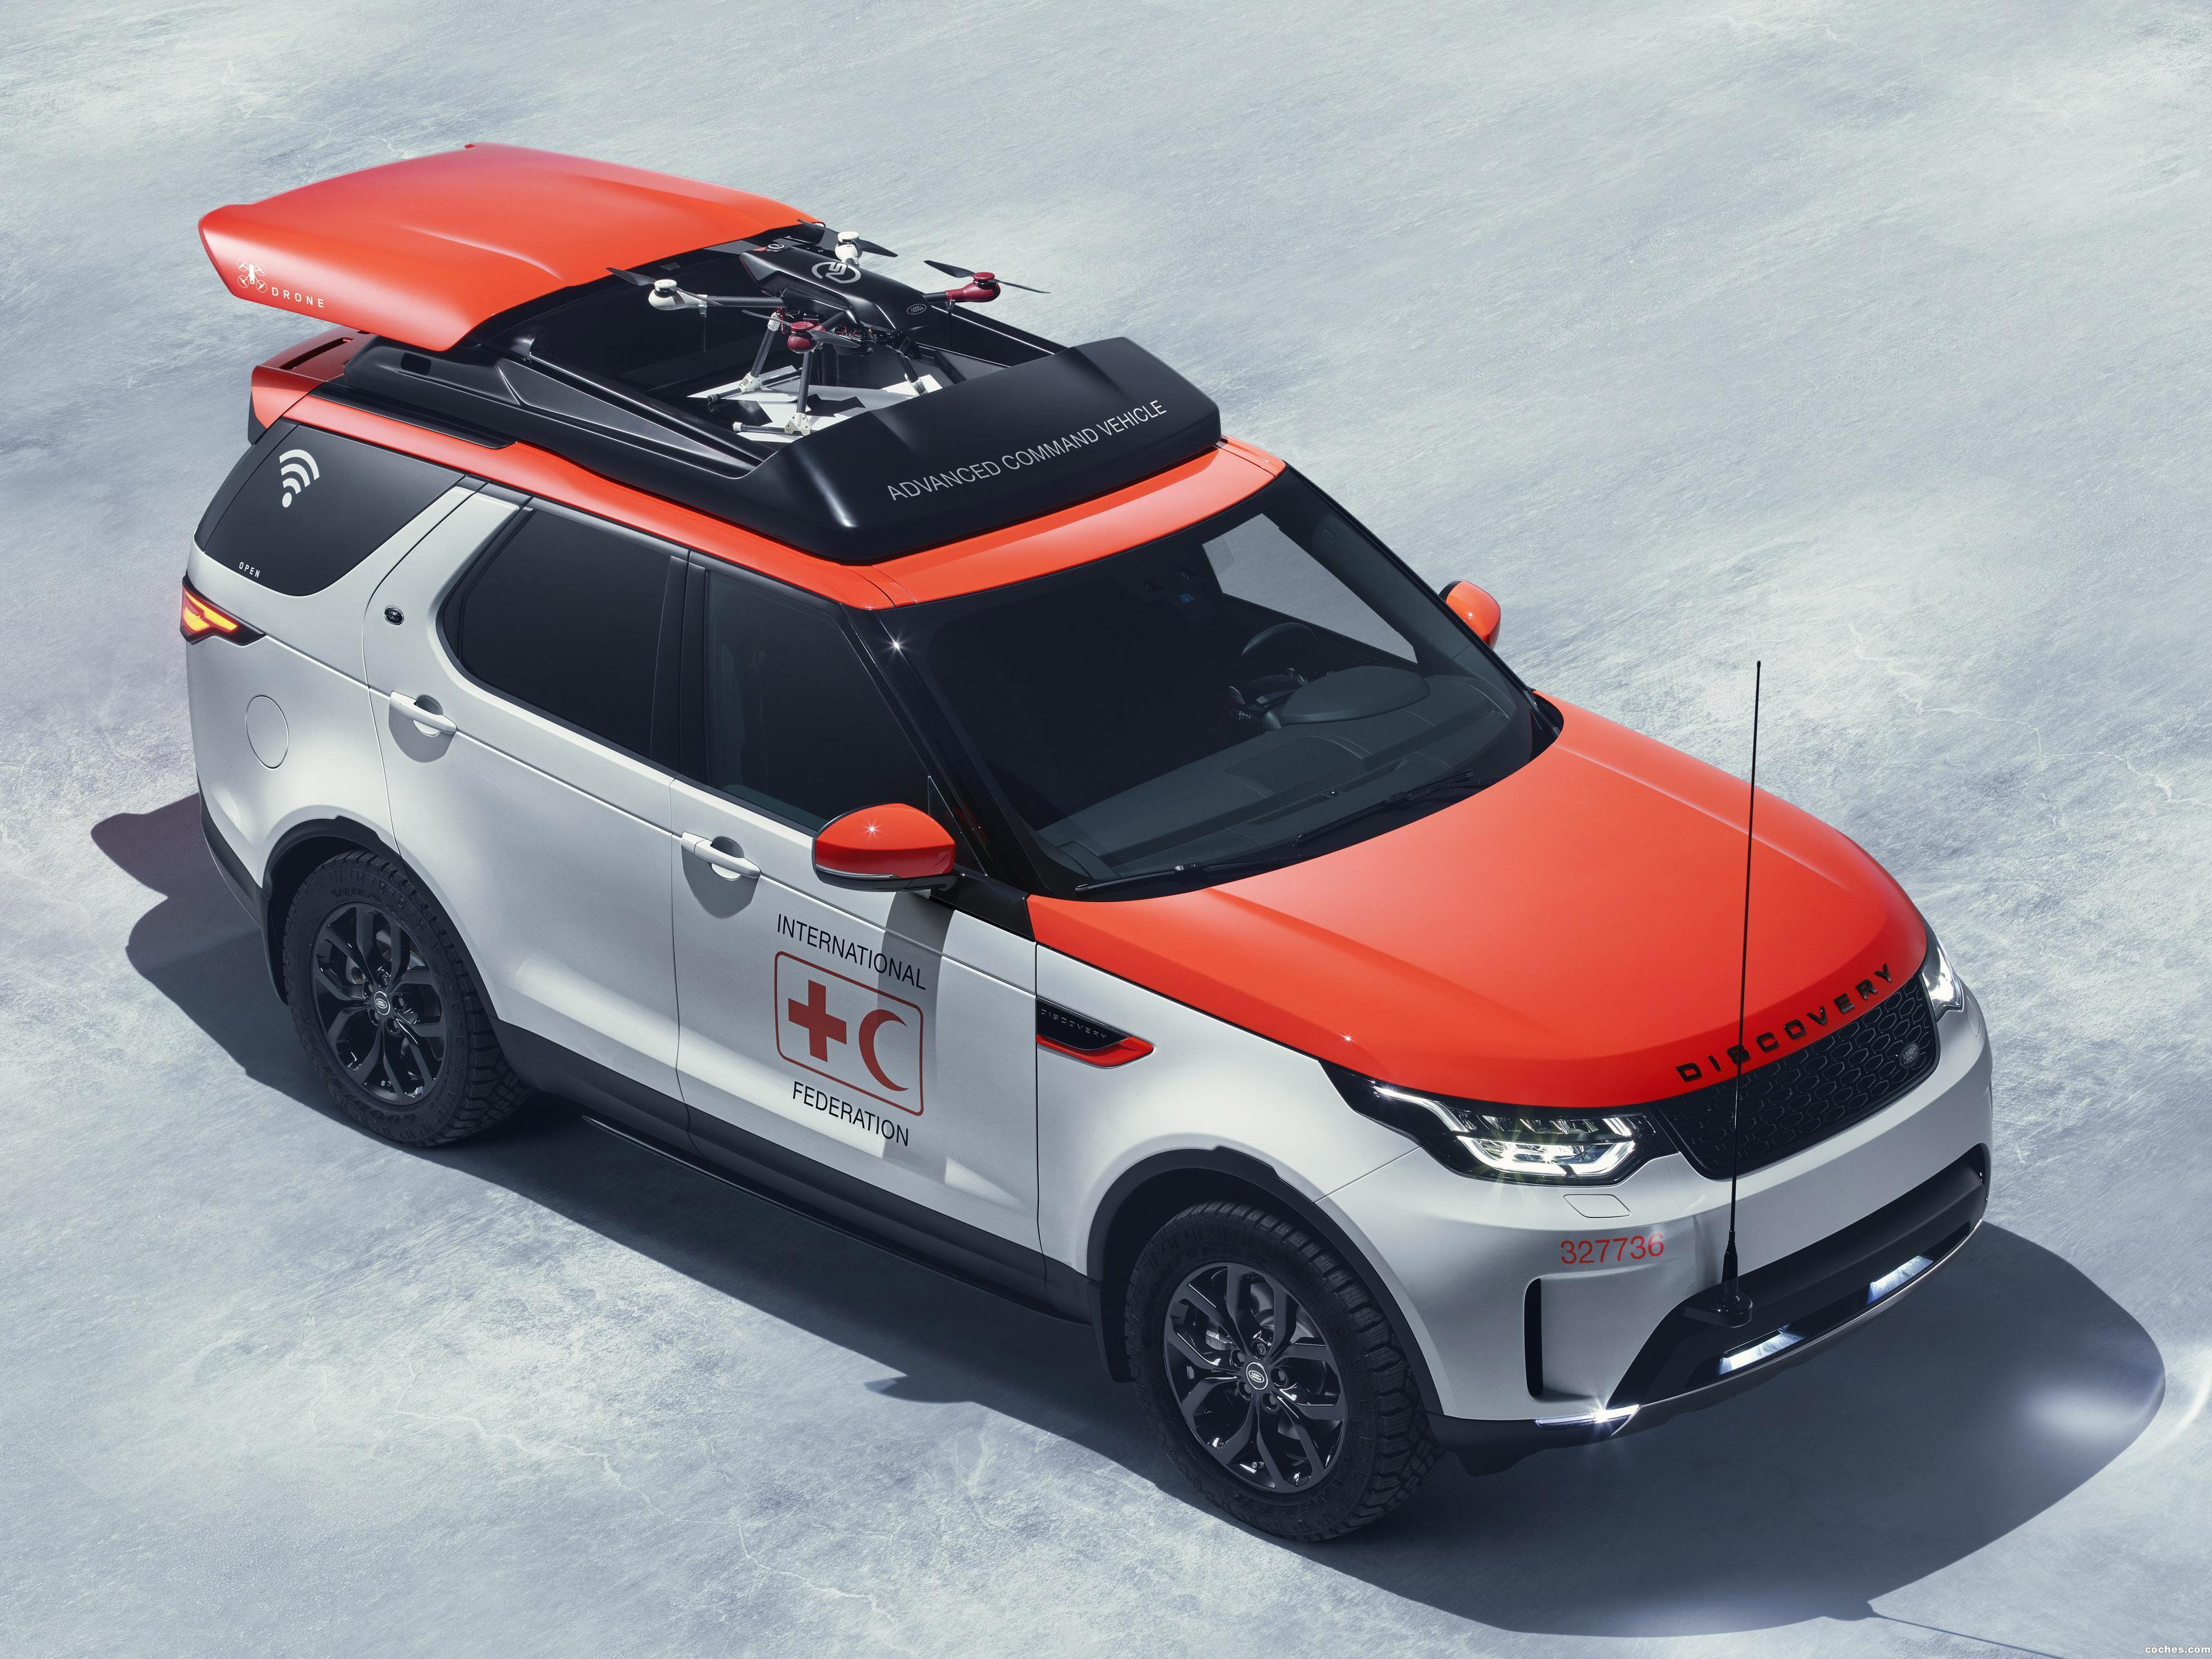 landrover_discovery-project-hero-2017_r12.jpg